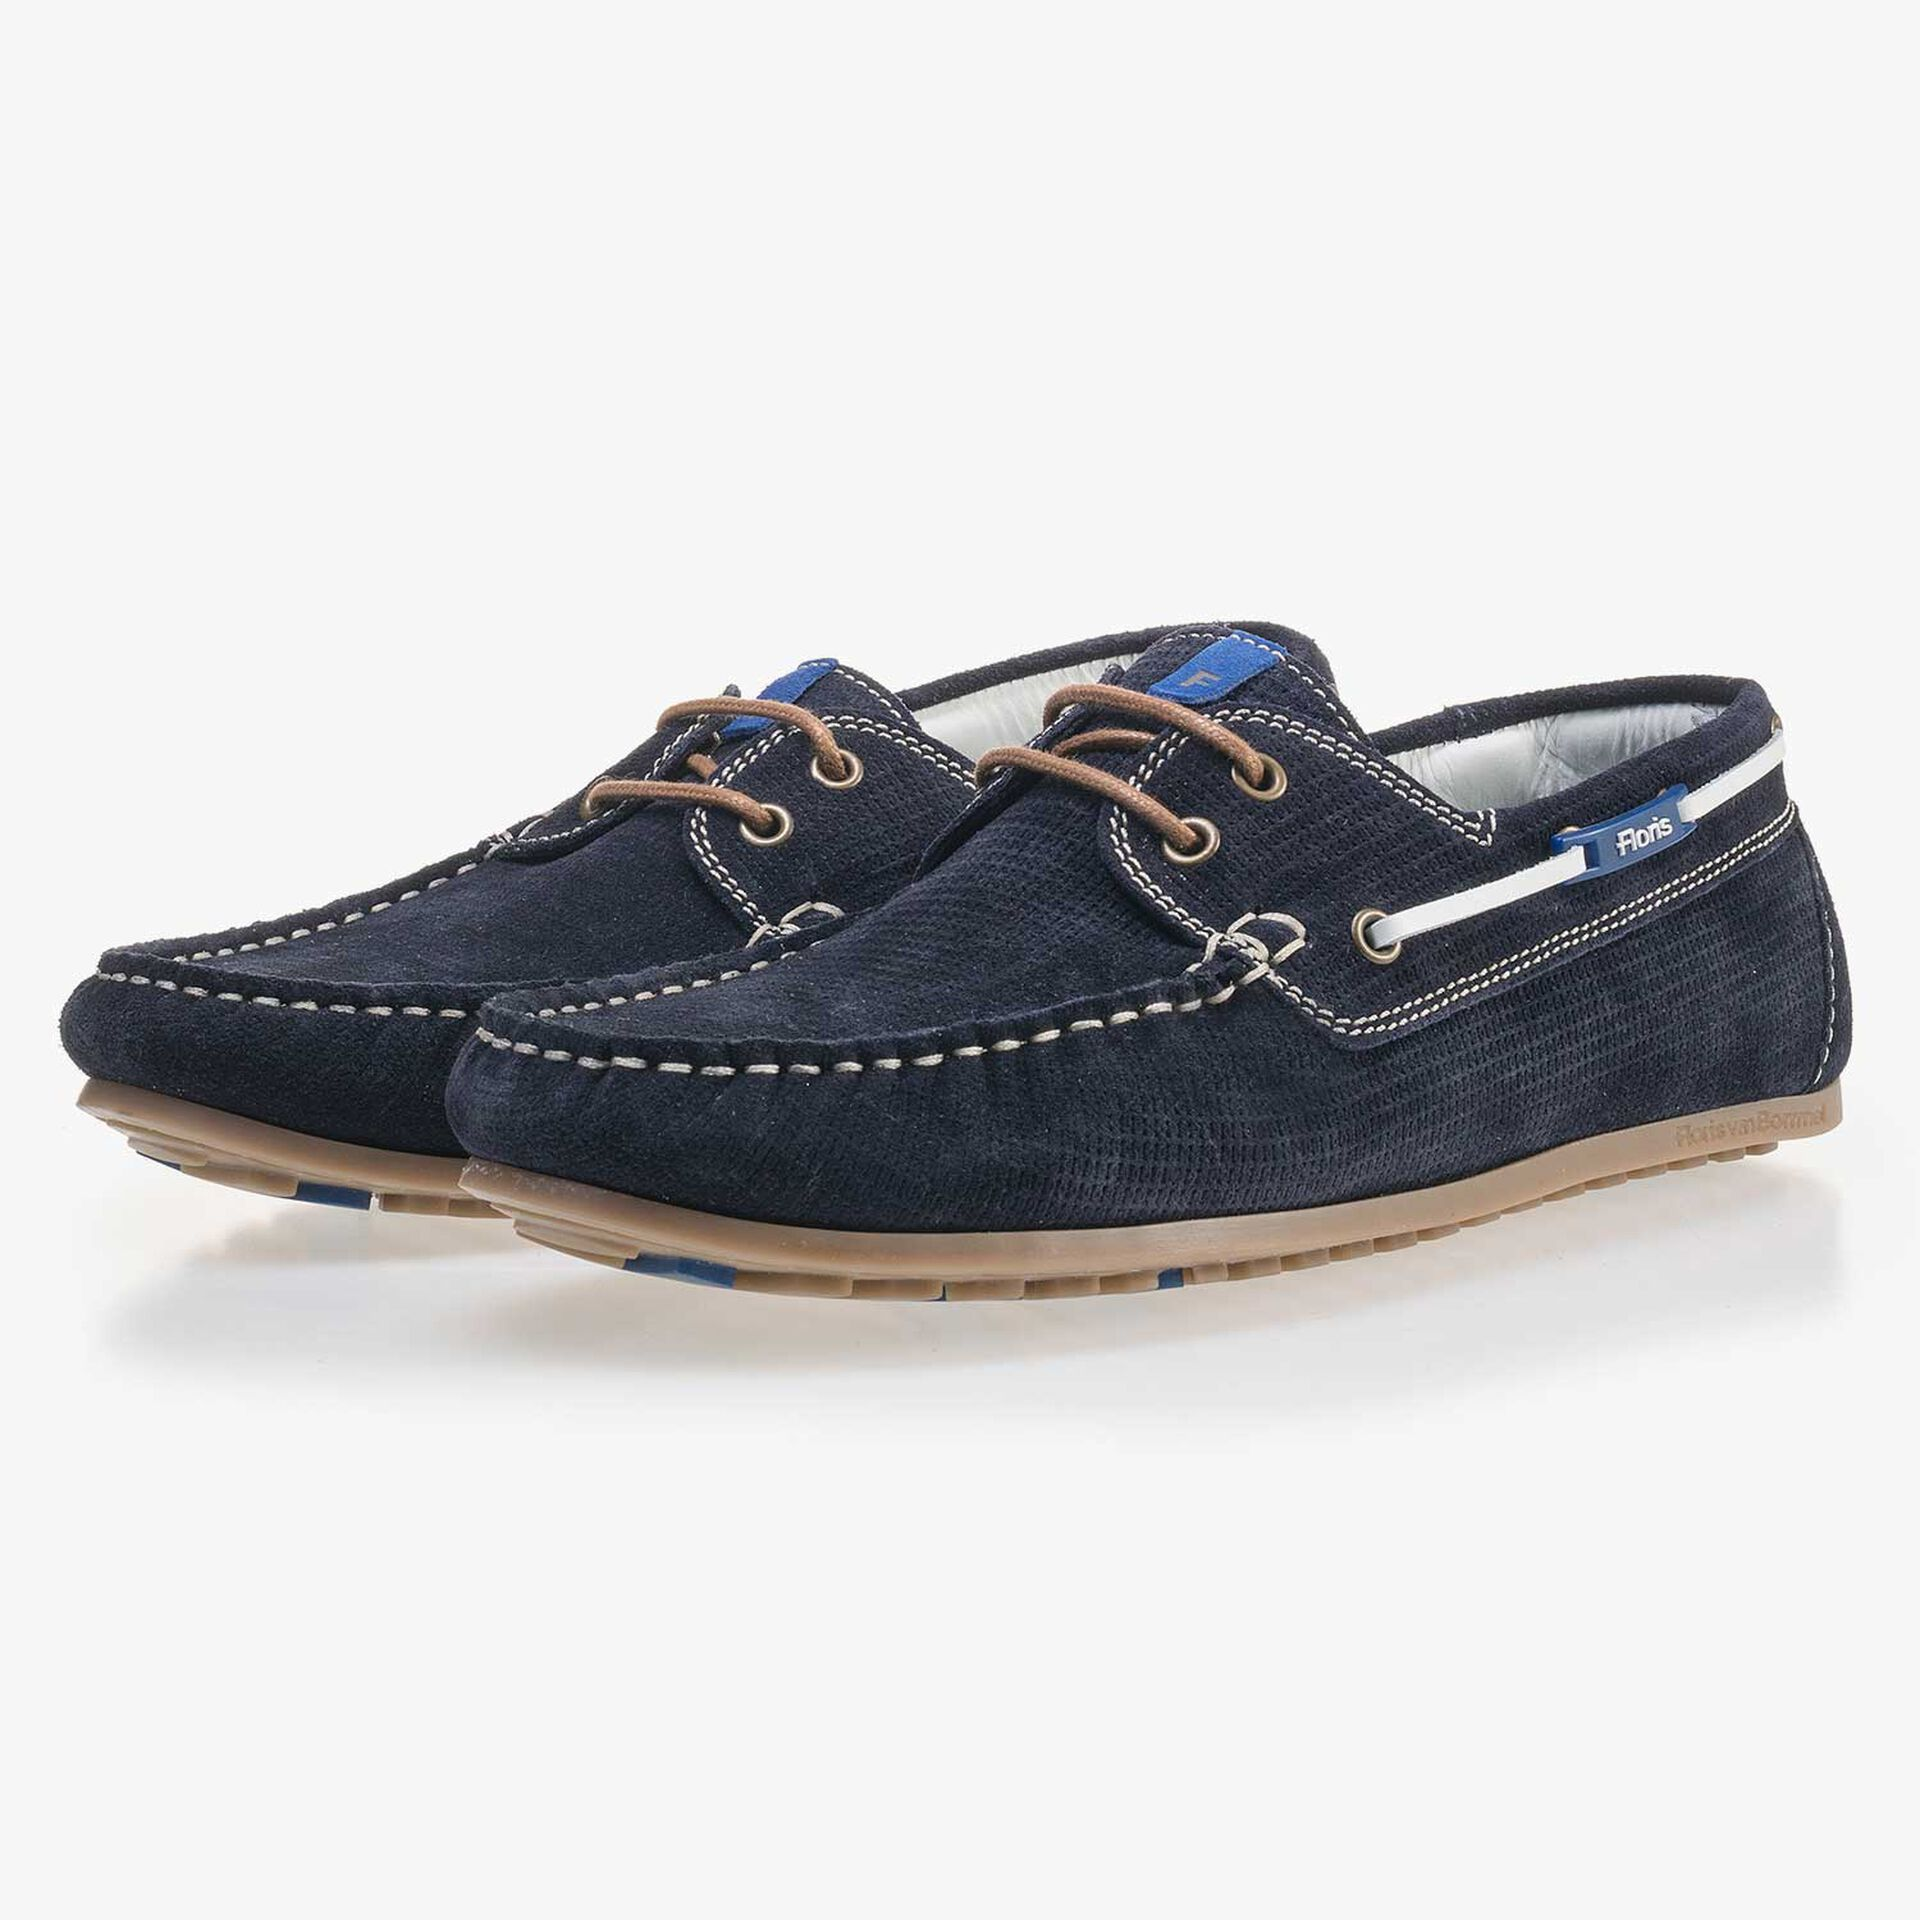 Dark blue, patterned suede leather boat shoe